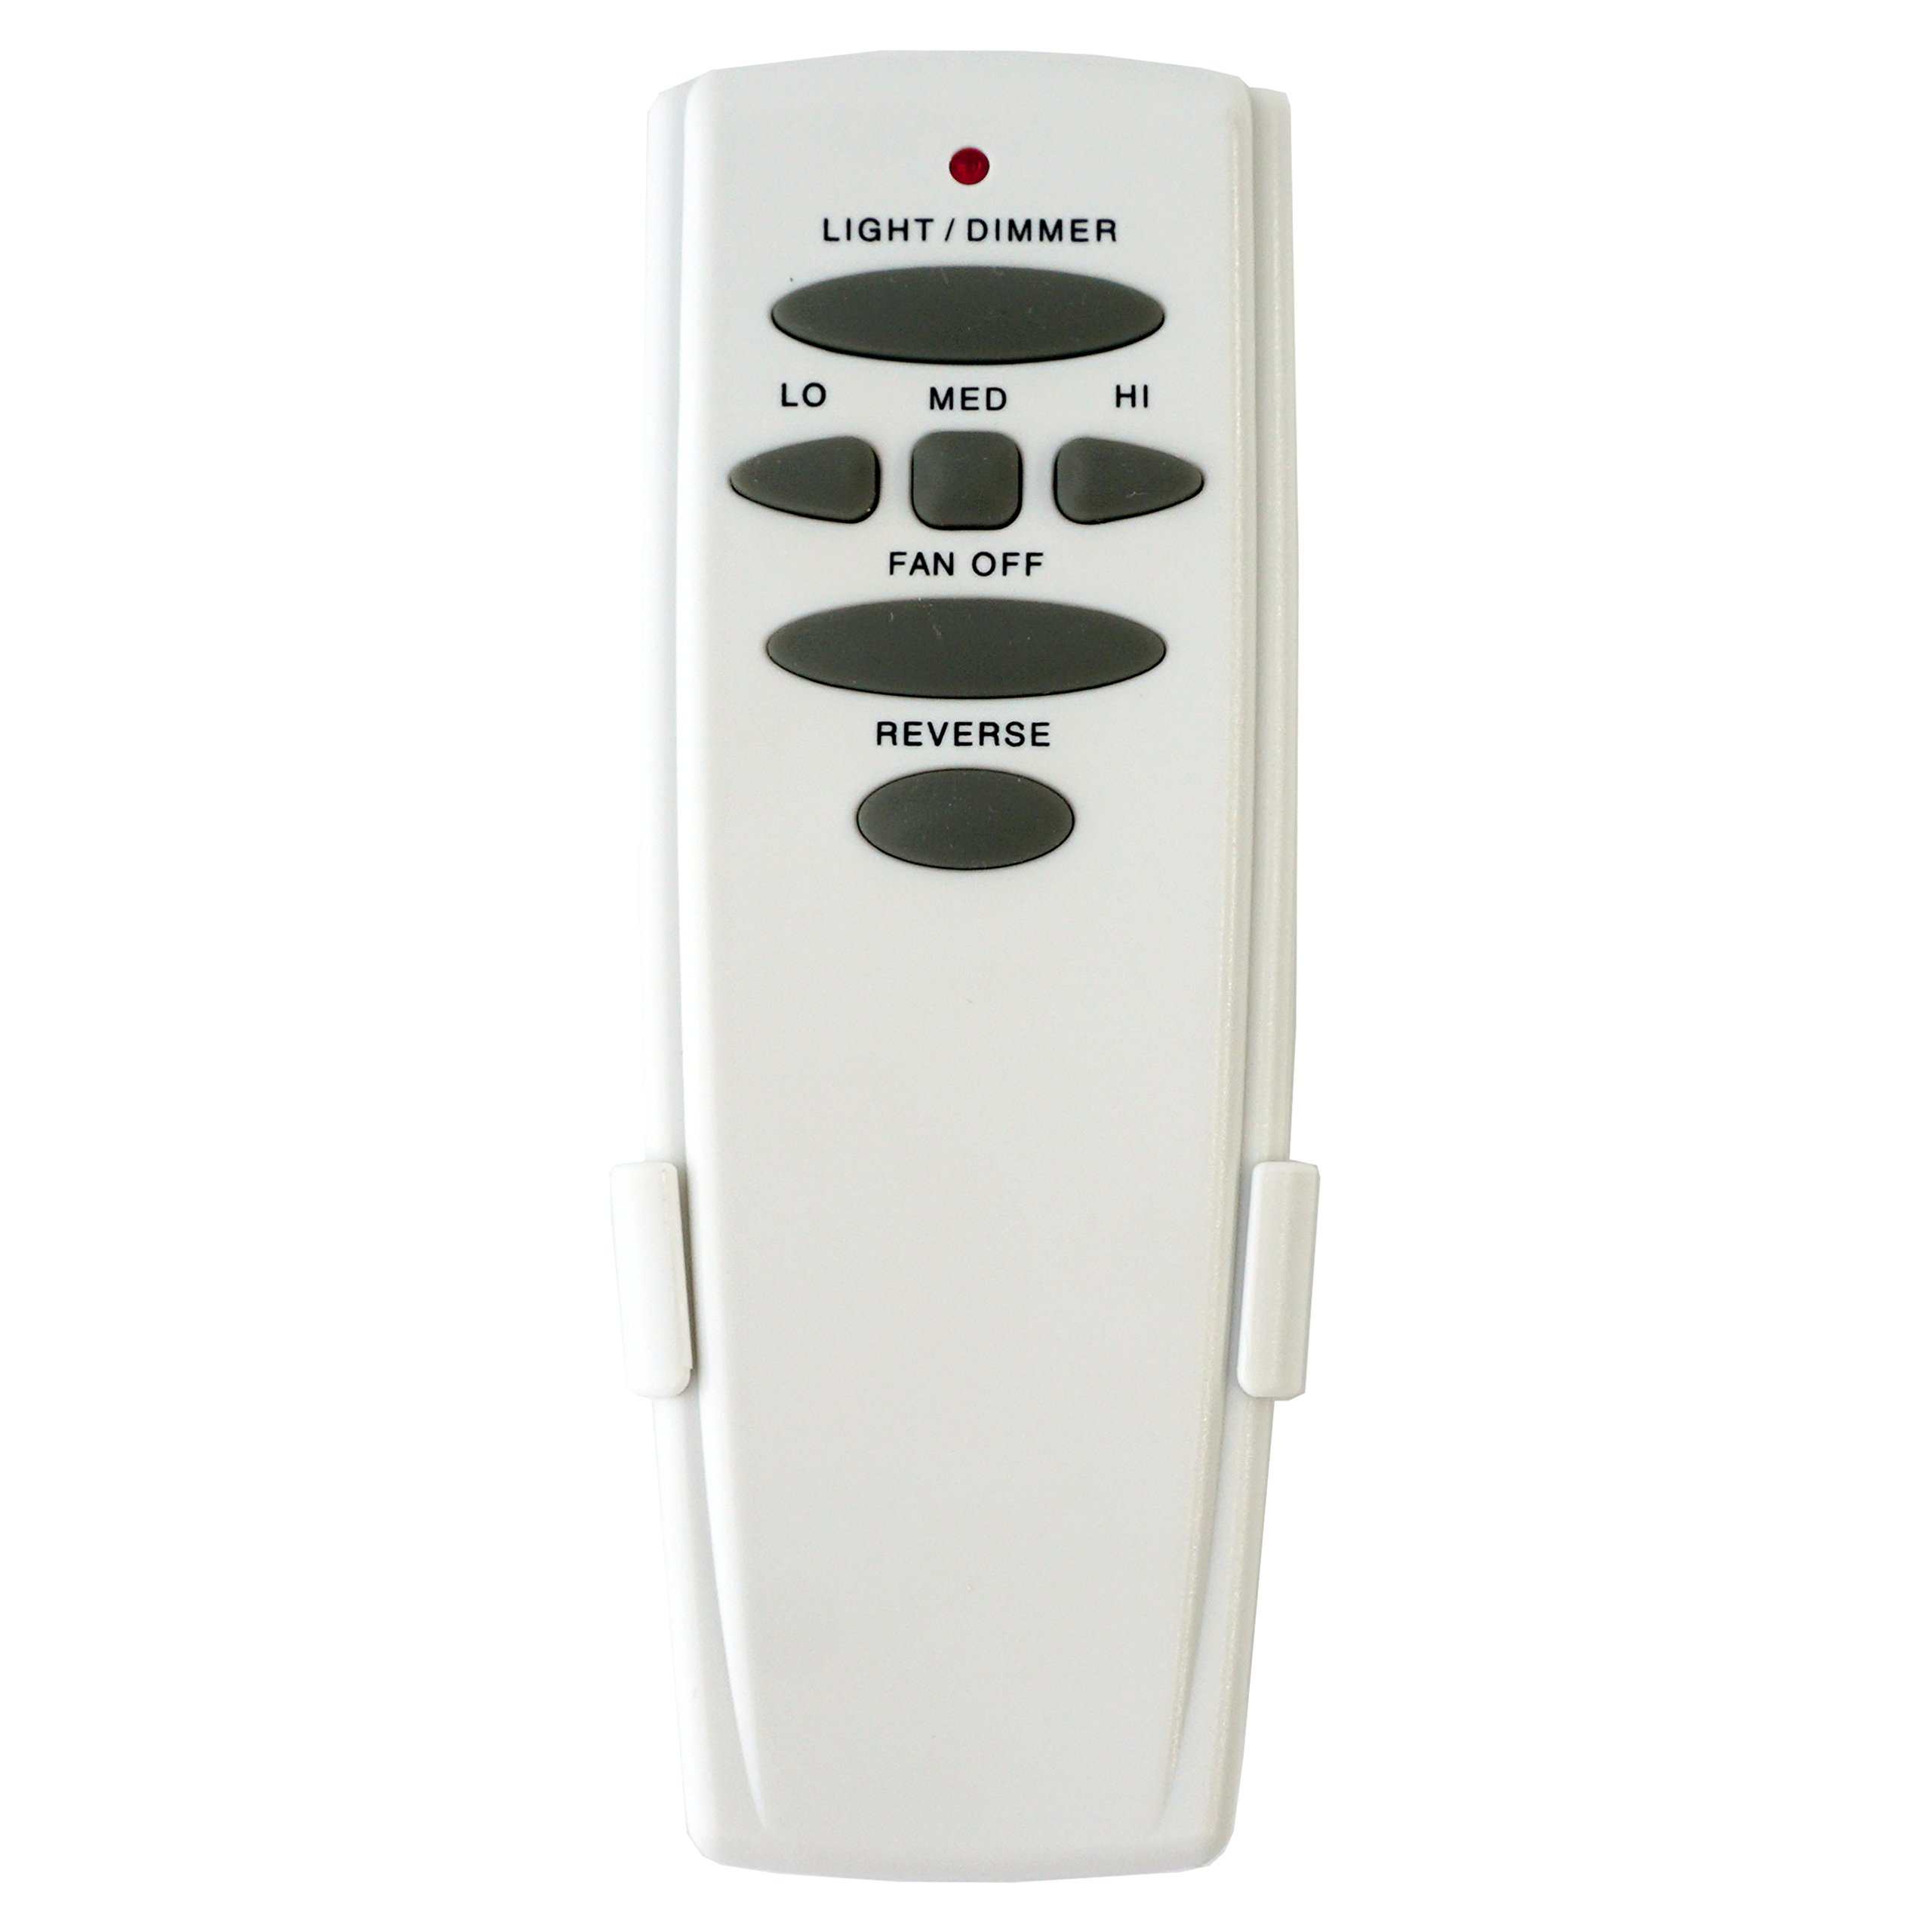 Eogifee Ceiling Fan Remote Control of Replacement for Hampton Bay UC7078T CHQ7078T with Reverse Button